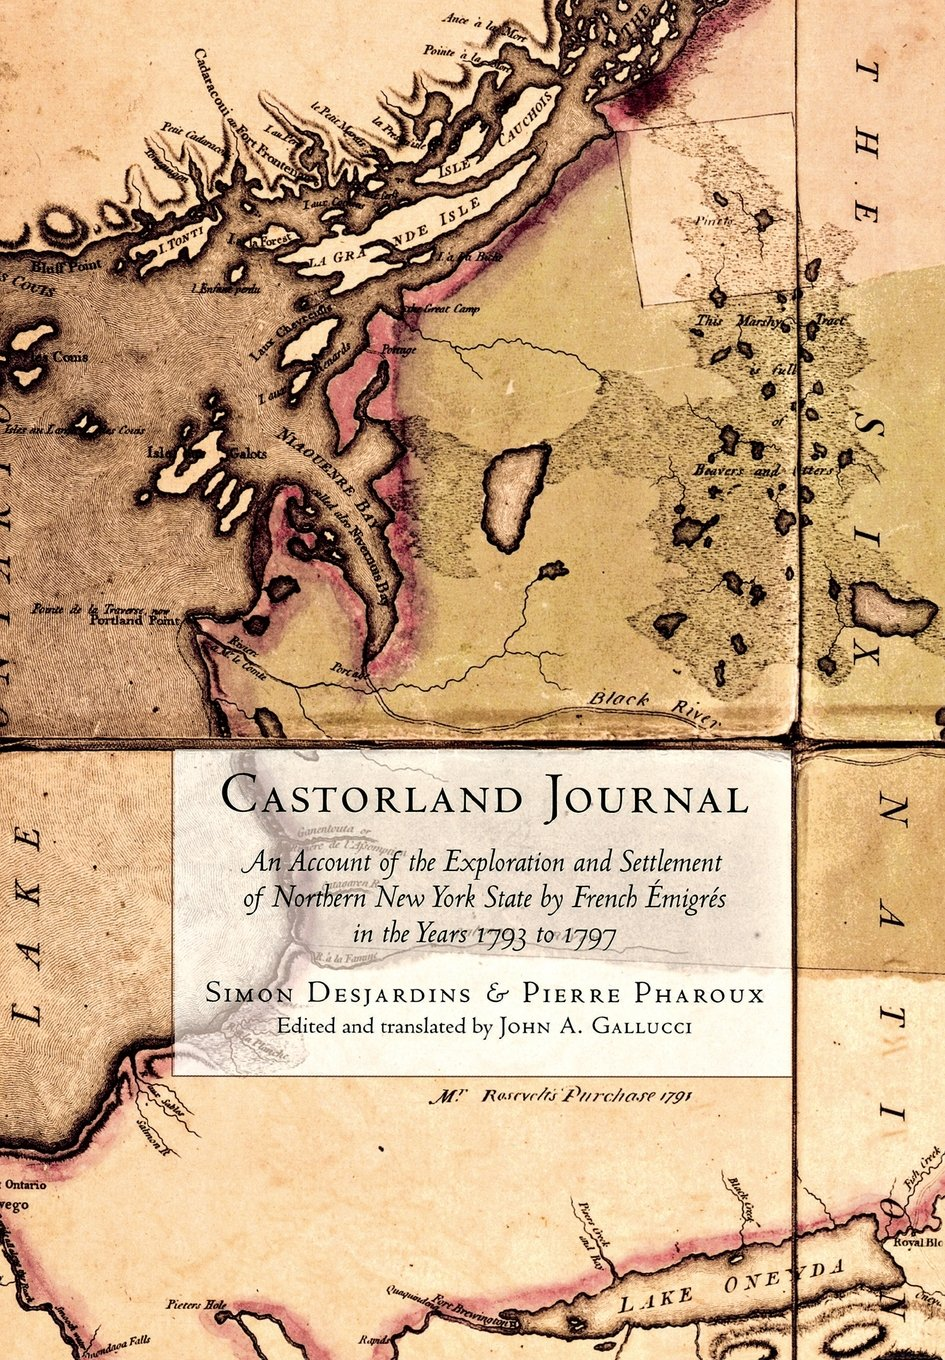 Castorland Journal: An Account of the Exploration and Settlement of New York State by French Émigrés in the Years 1793 to 1797 ebook